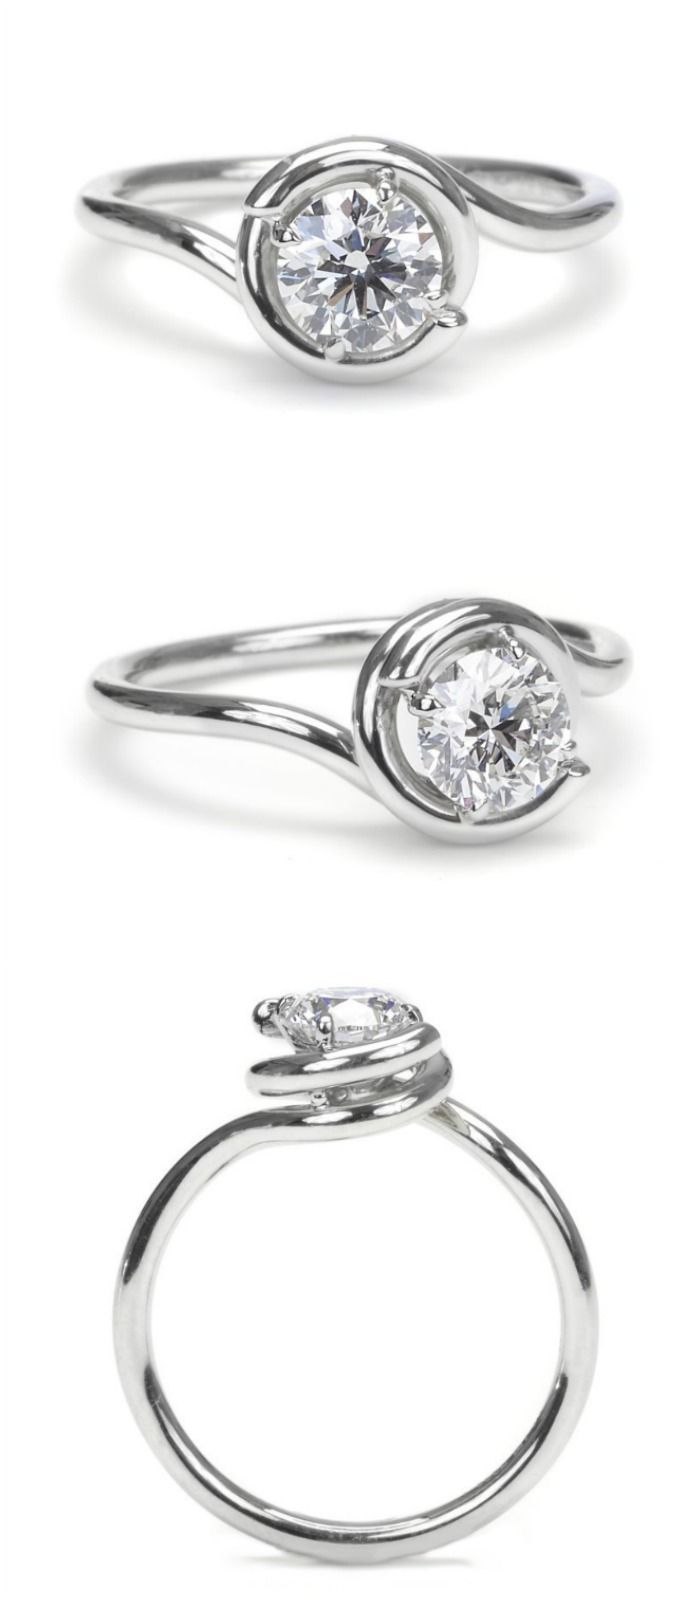 jewellery ring new trusty decor to engagement now know designers diamond settings wuurbkg best